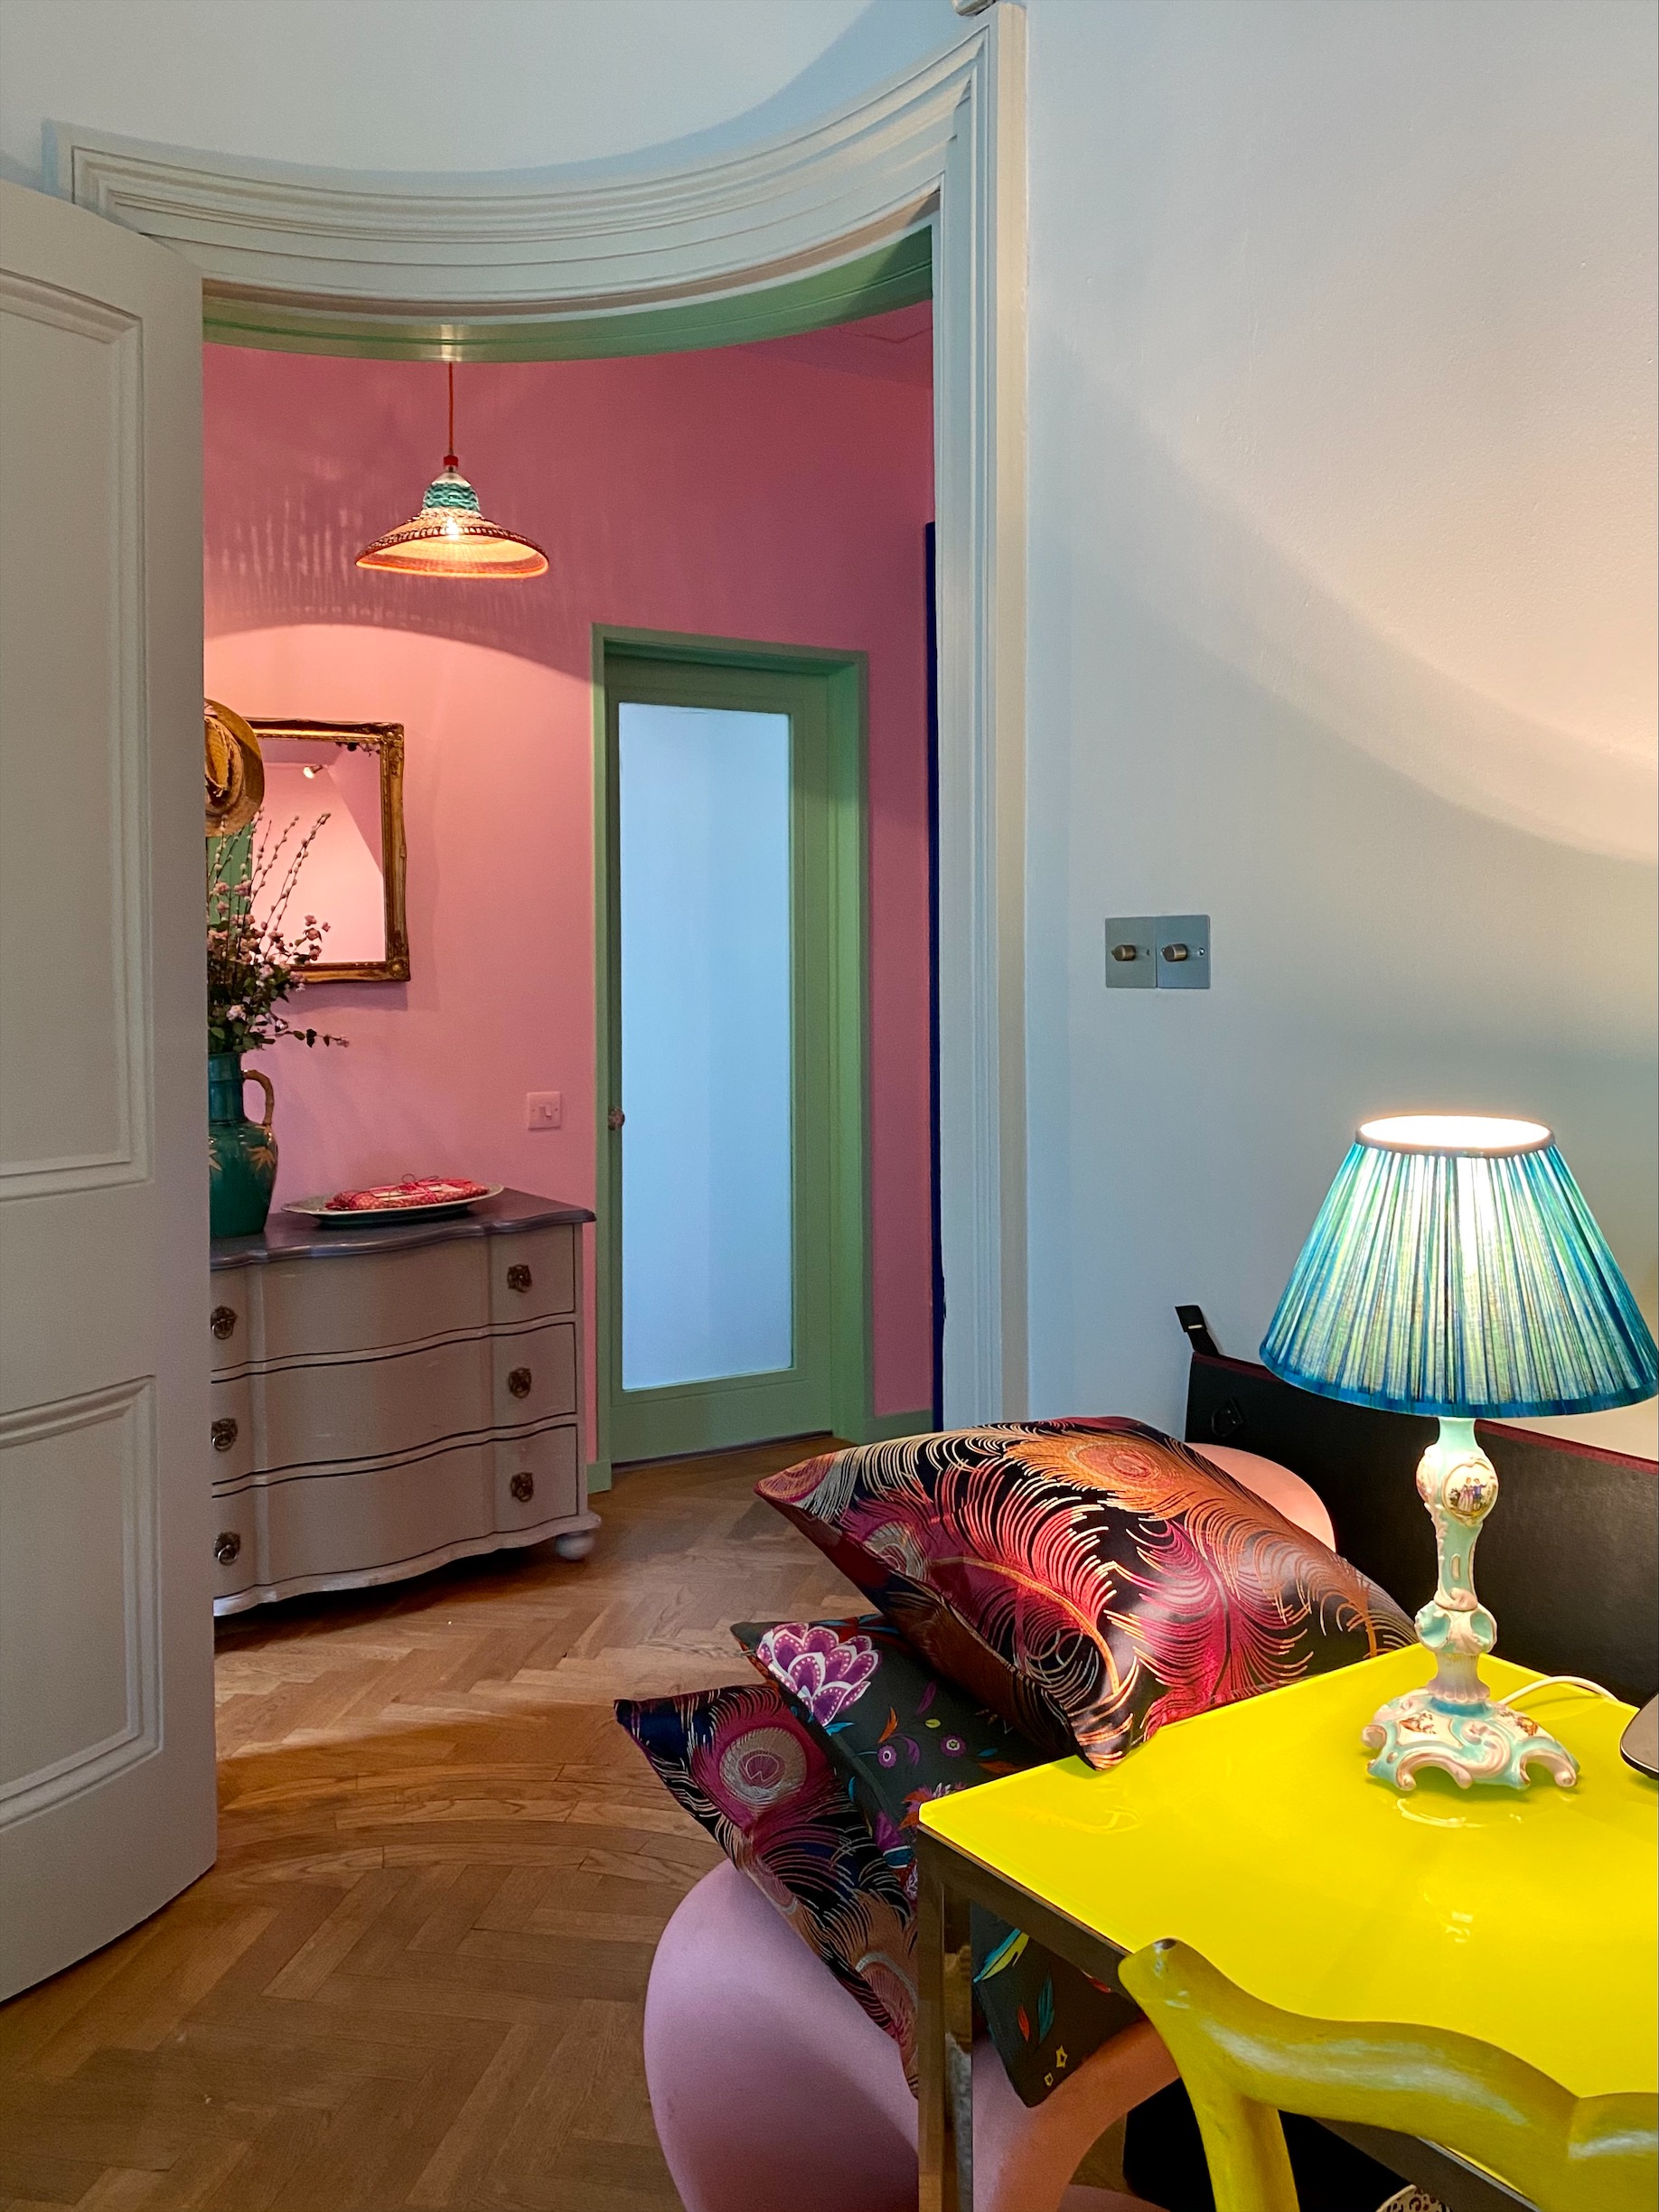 Matthew Williamson soft grey walls with pops of bright colour